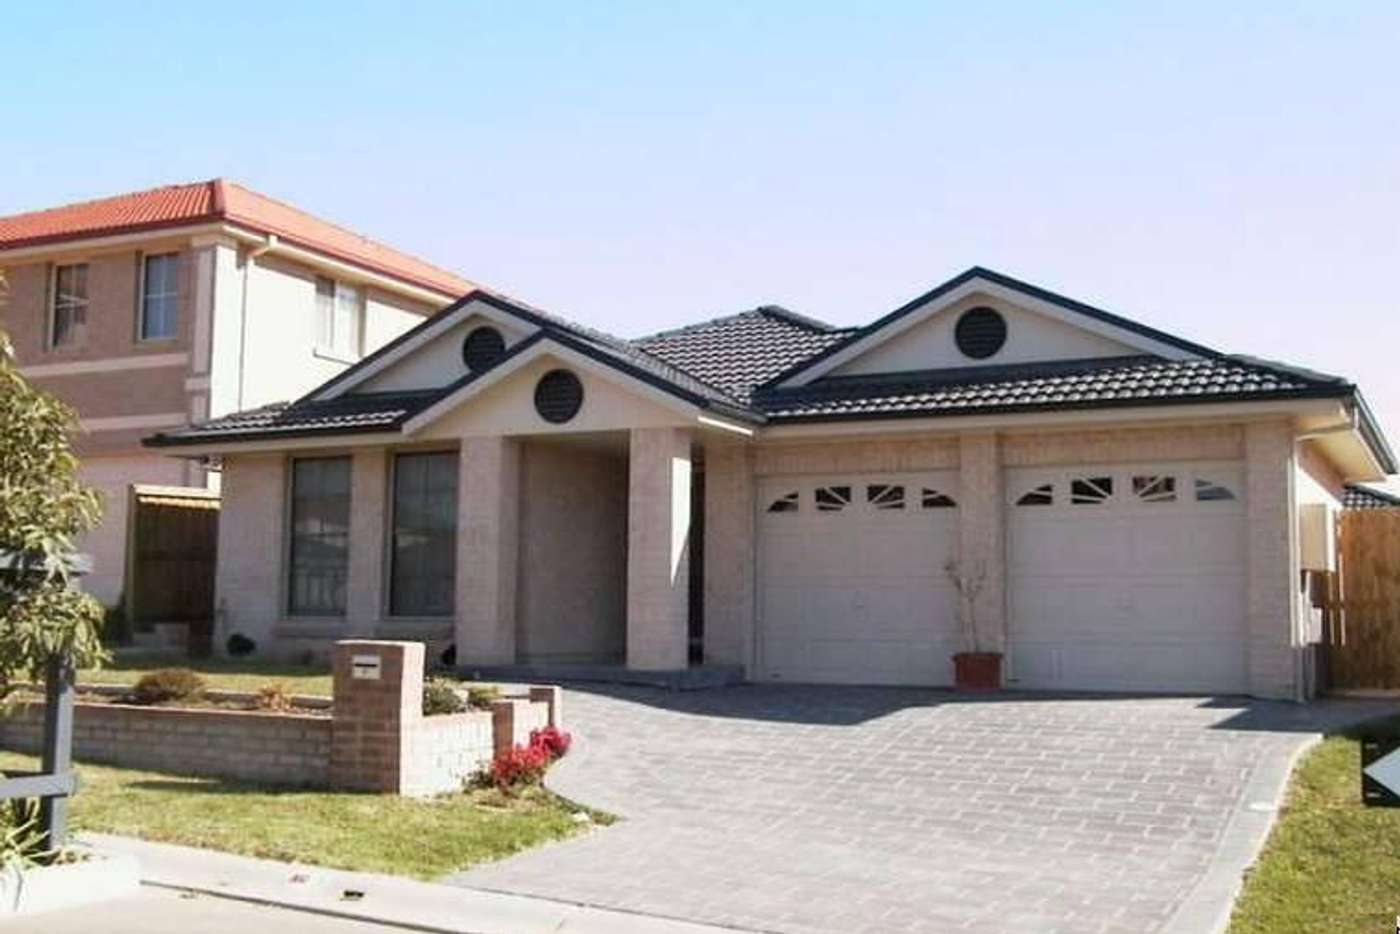 Main view of Homely house listing, 8 Kirton Street, Stanhope Gardens NSW 2768